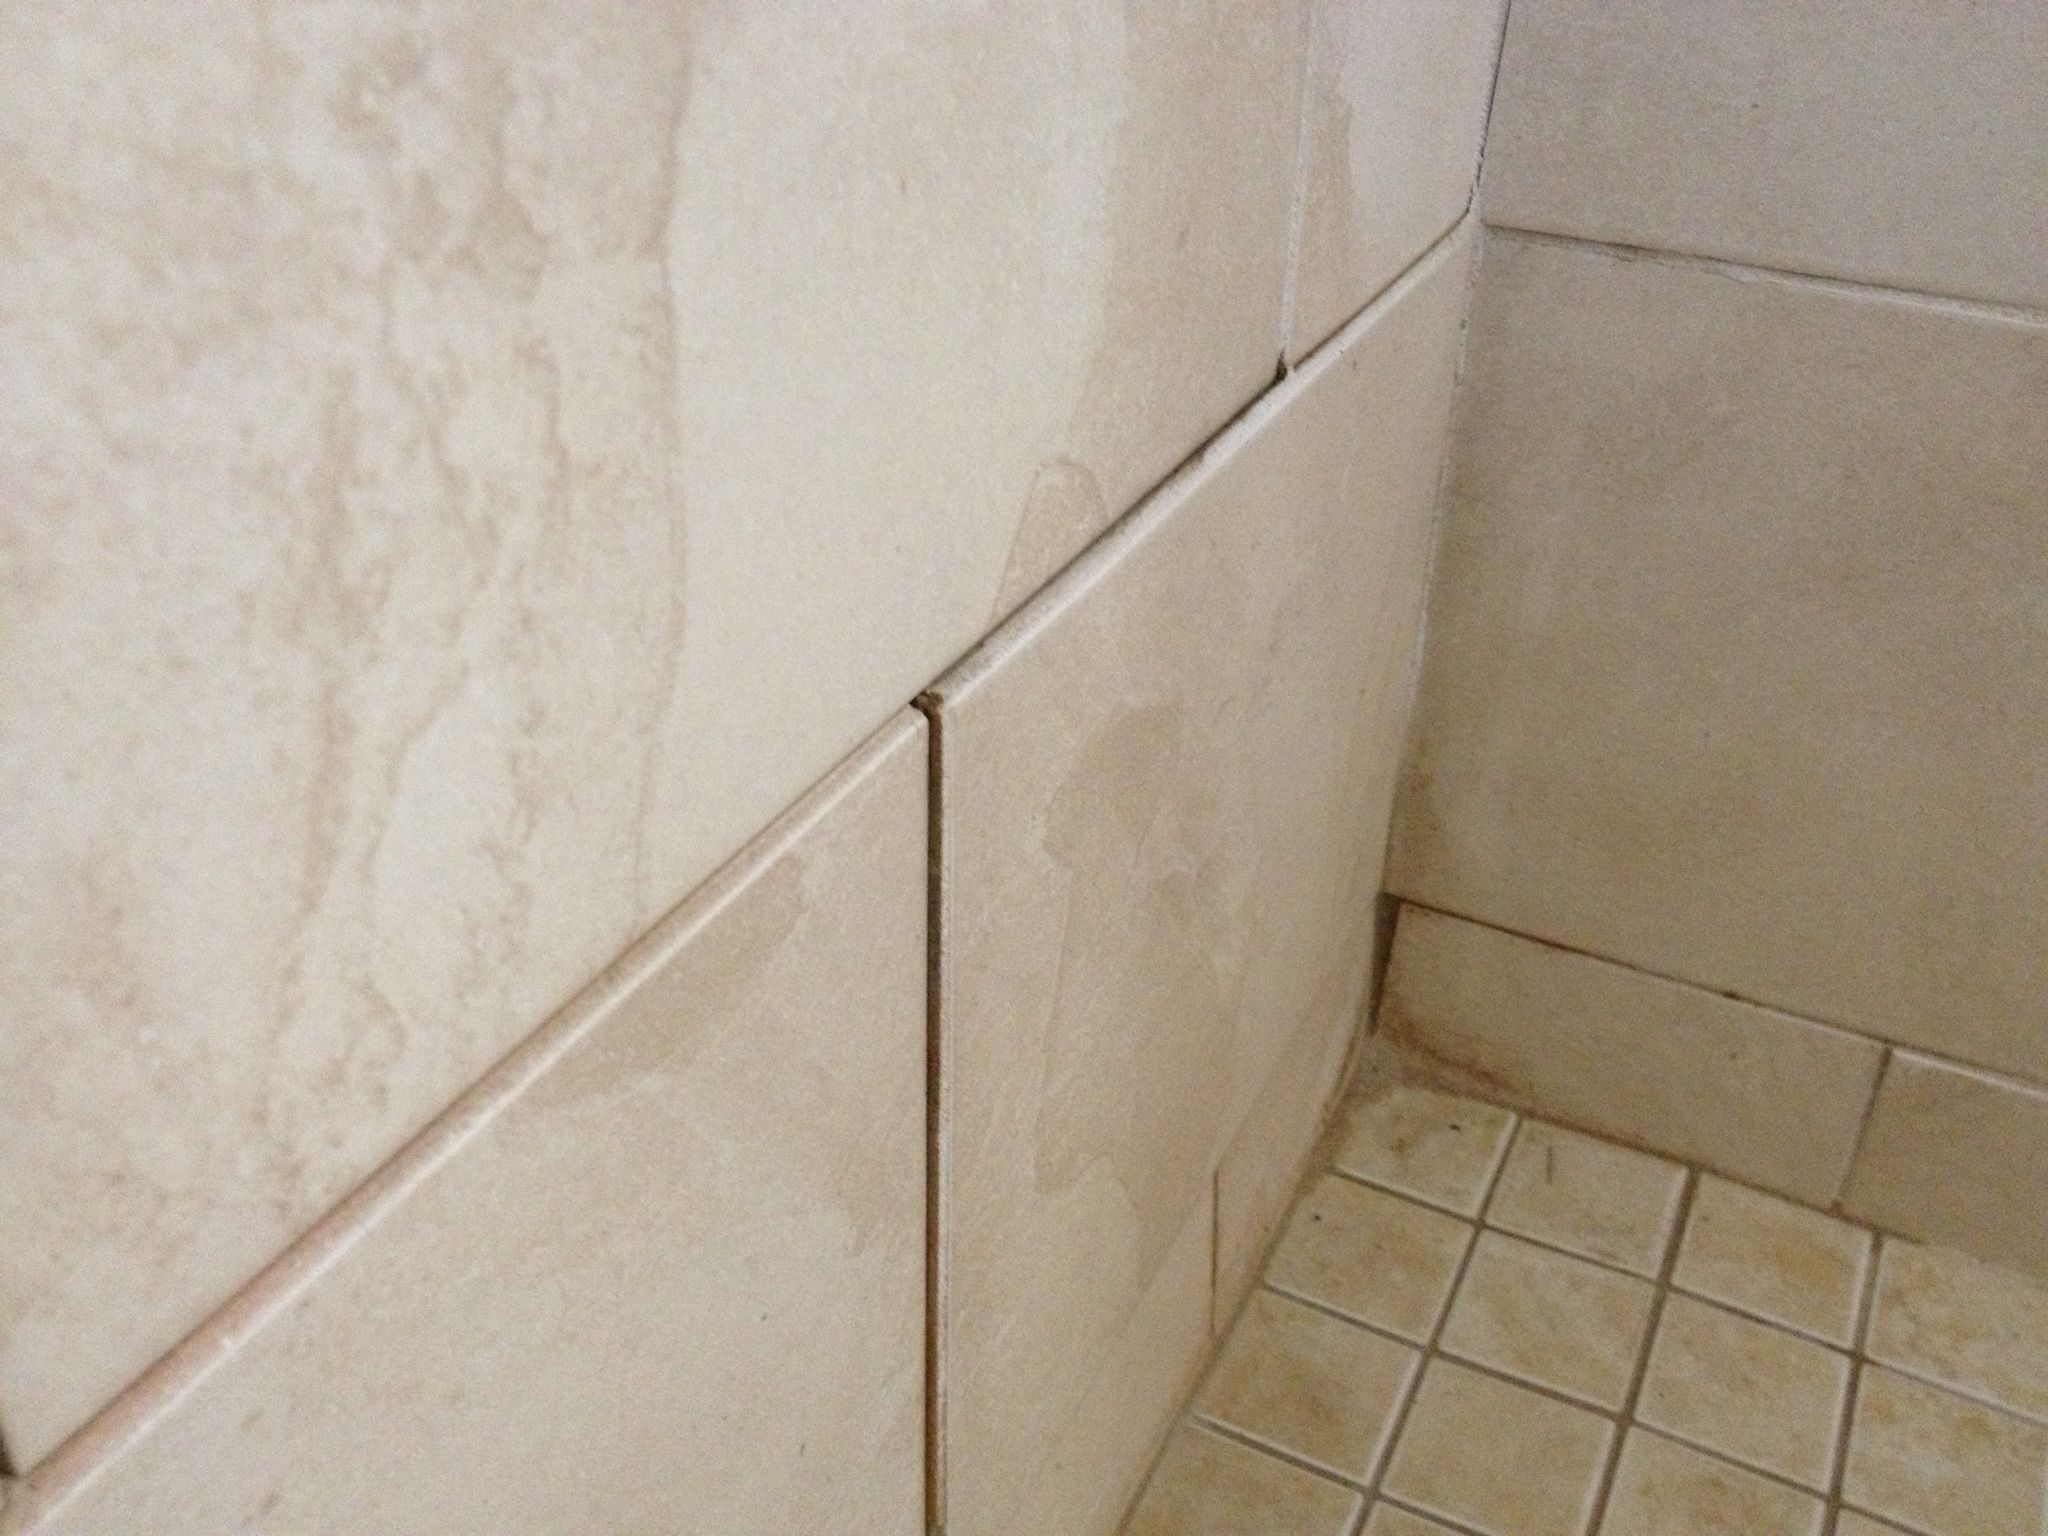 How To Repair A Loose Shower Tile Recipe Shower Floor Tile